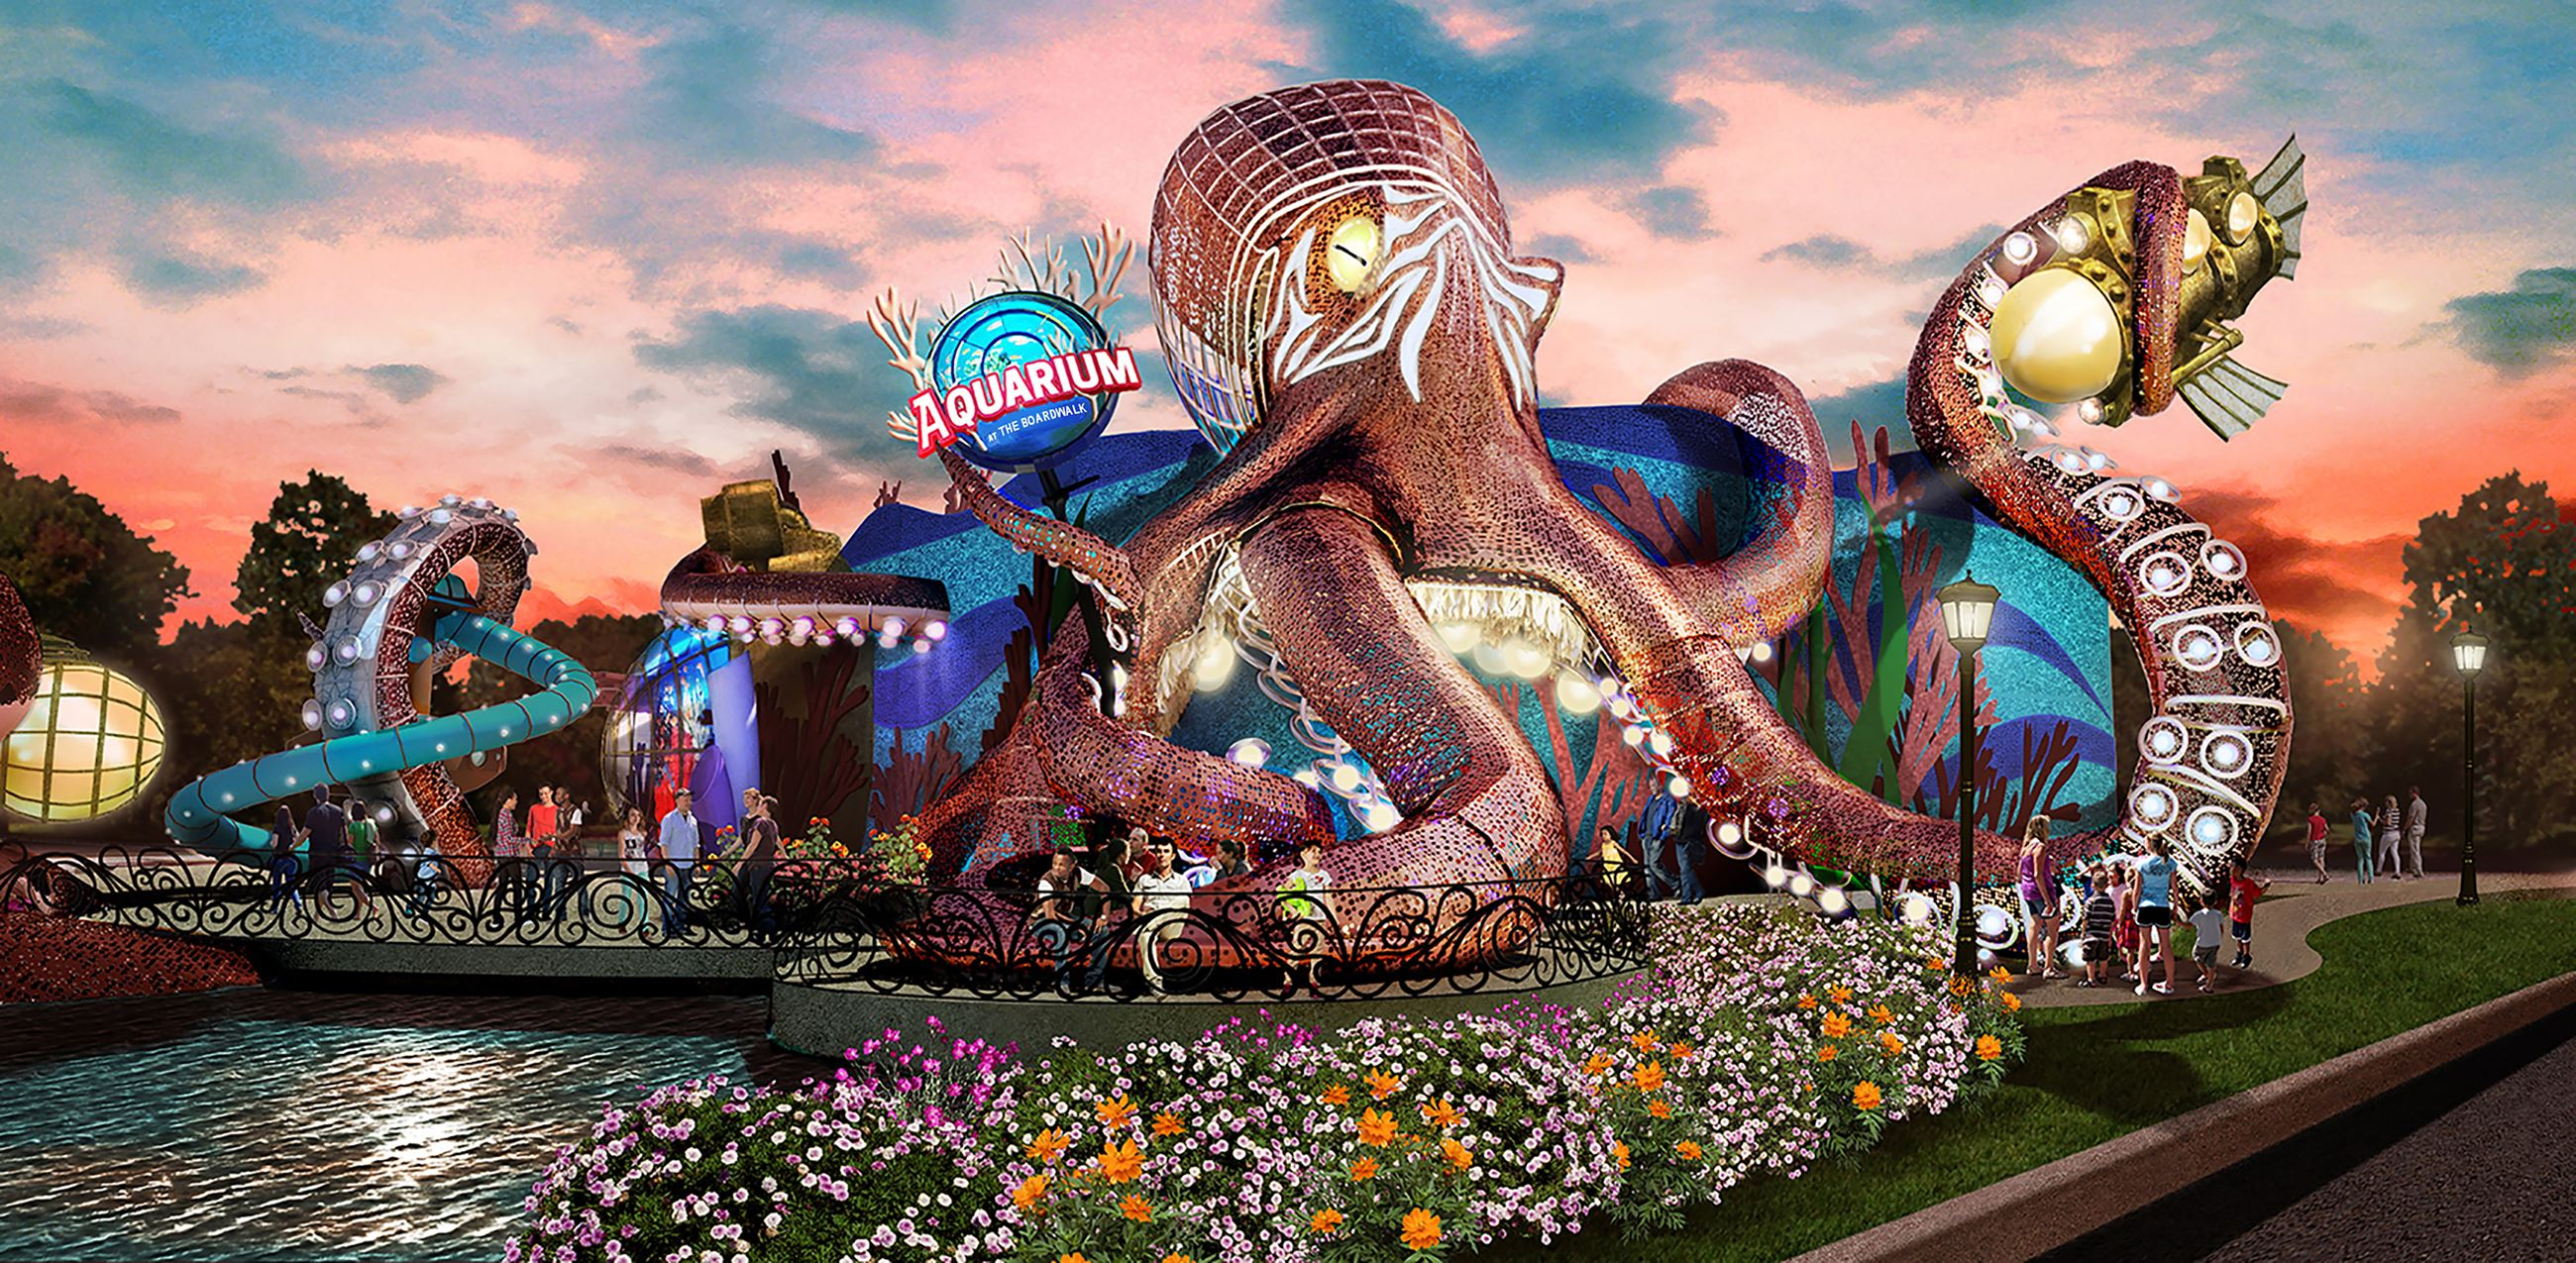 Aquarium-Exterior-Great-Pacific-Octopus-Sculpture-Final_2018-08-13